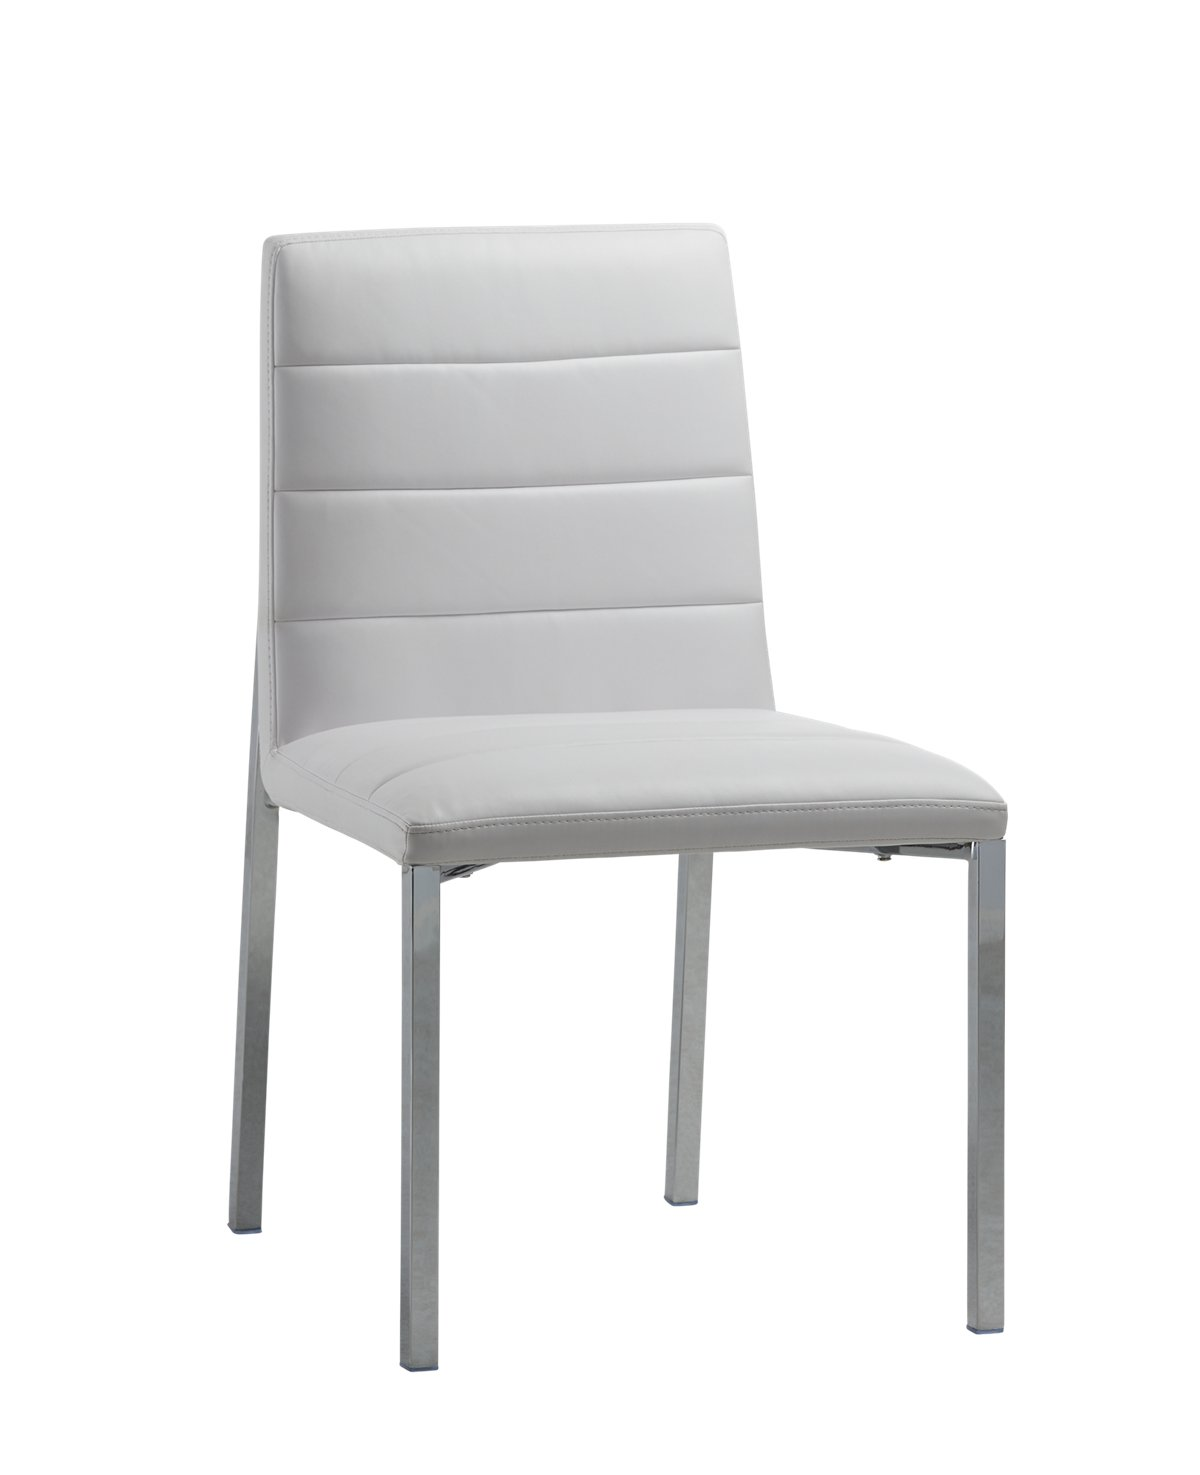 White Upholstered Furniture